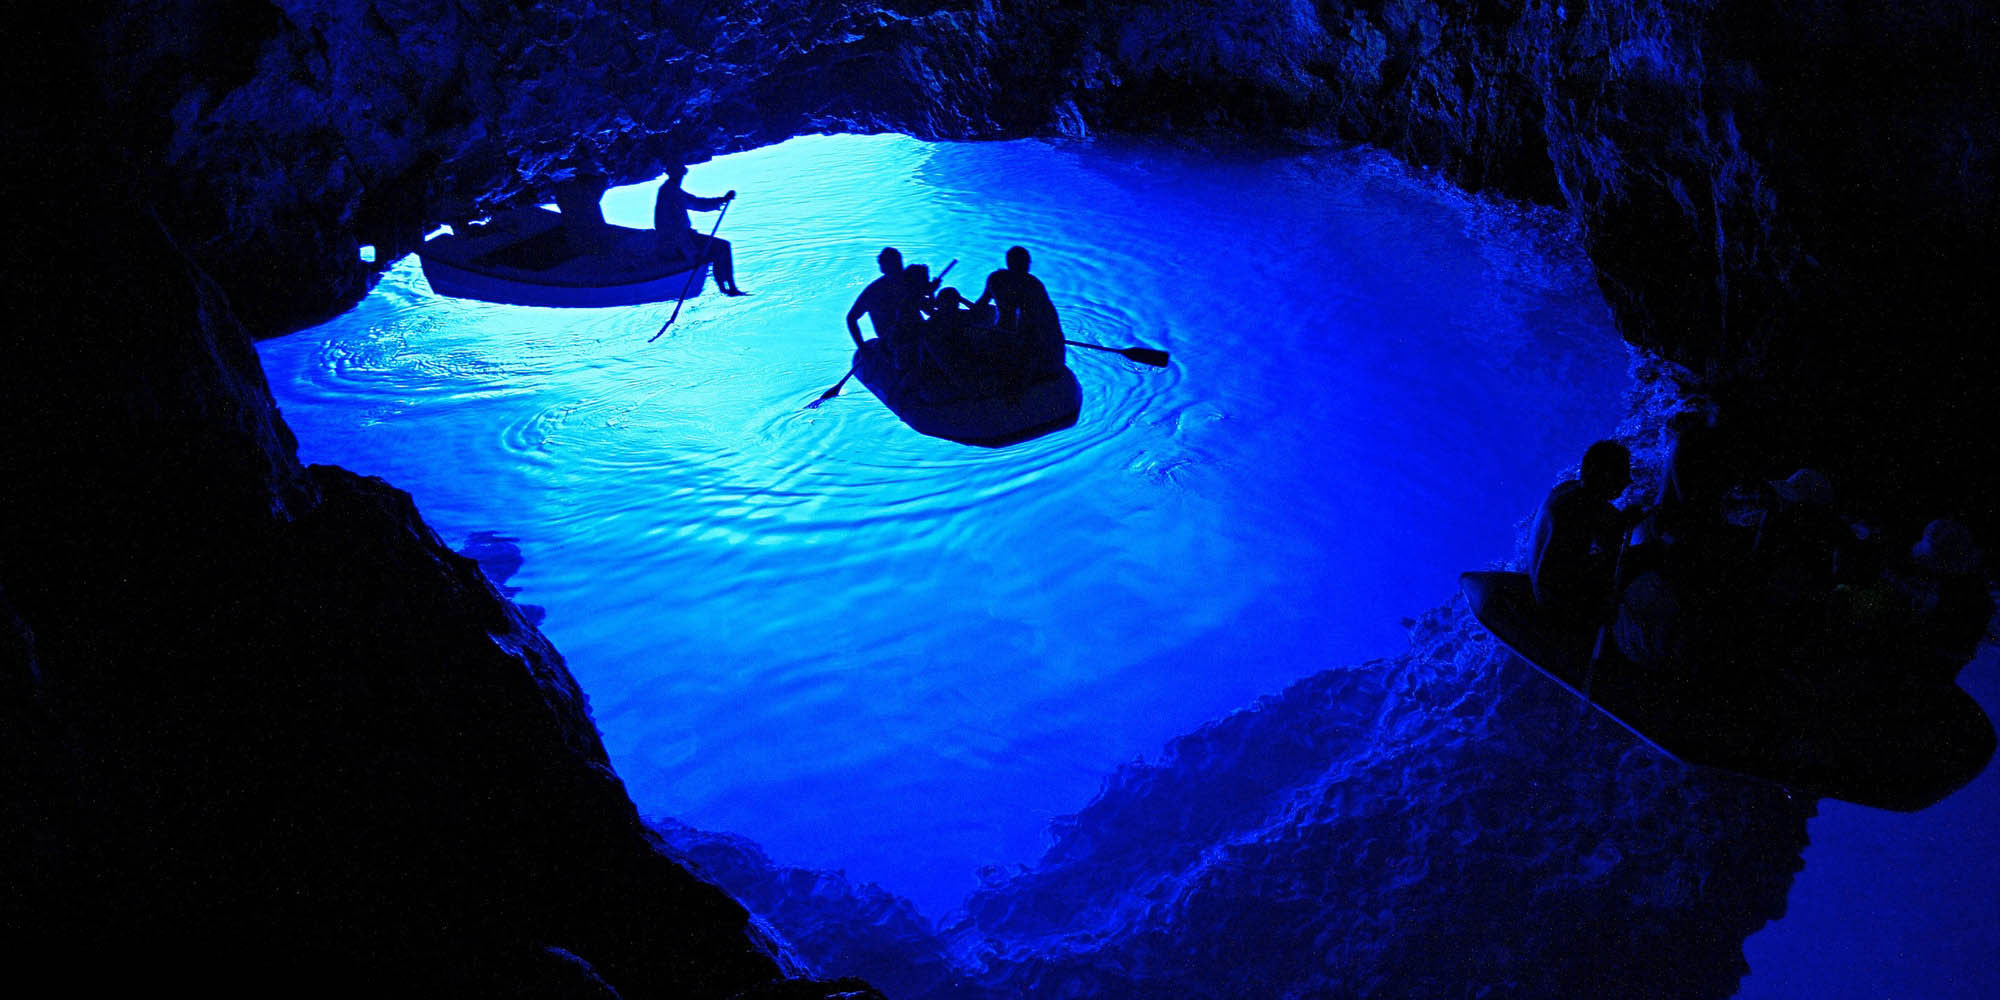 the-blue-cave-on-the-island-of-bisevo-in-croatia-is-a-je-secret-world